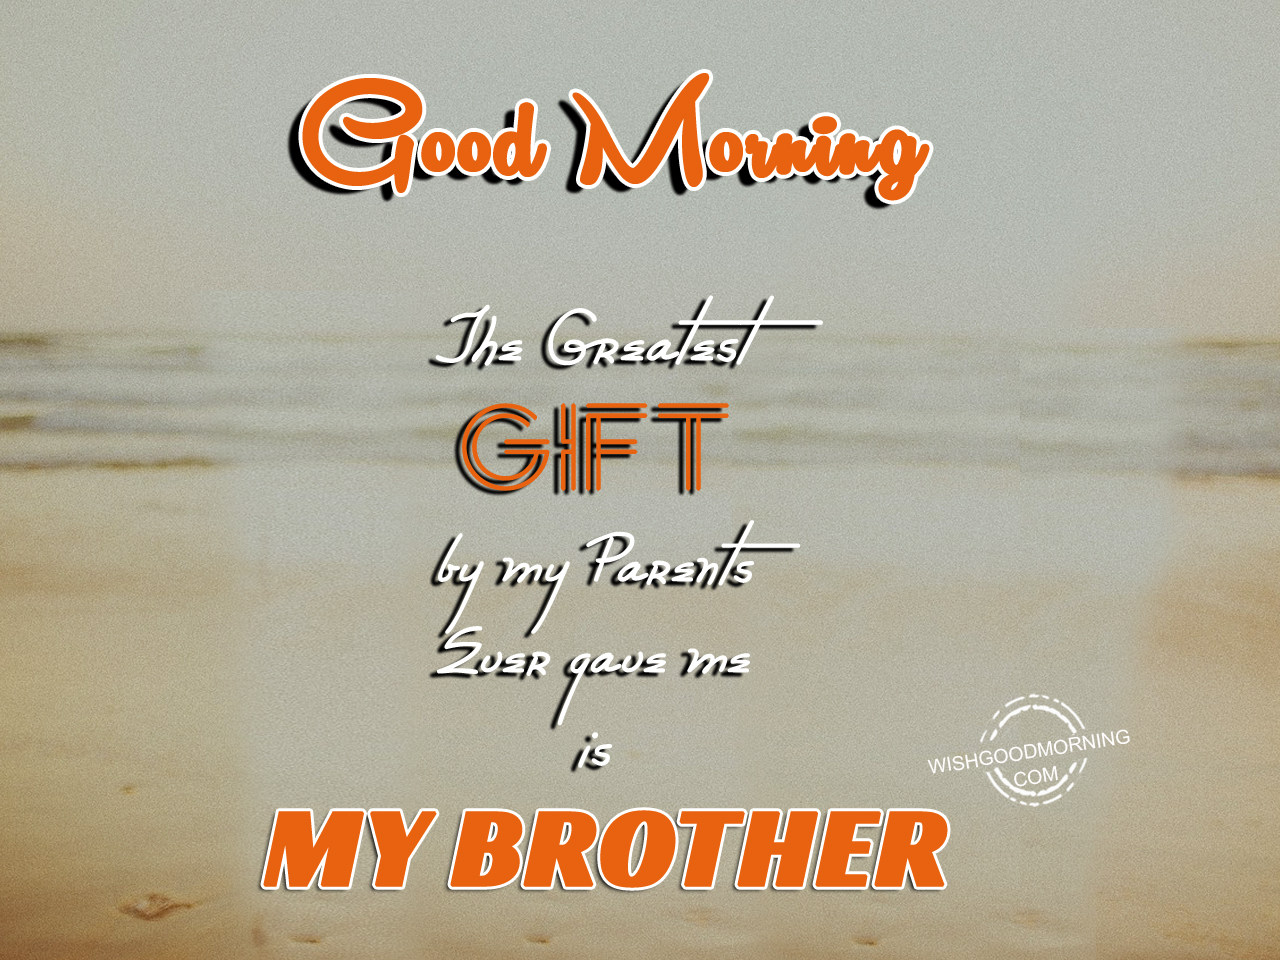 Good Morning Brother : Good morning wishes for brother pictures images